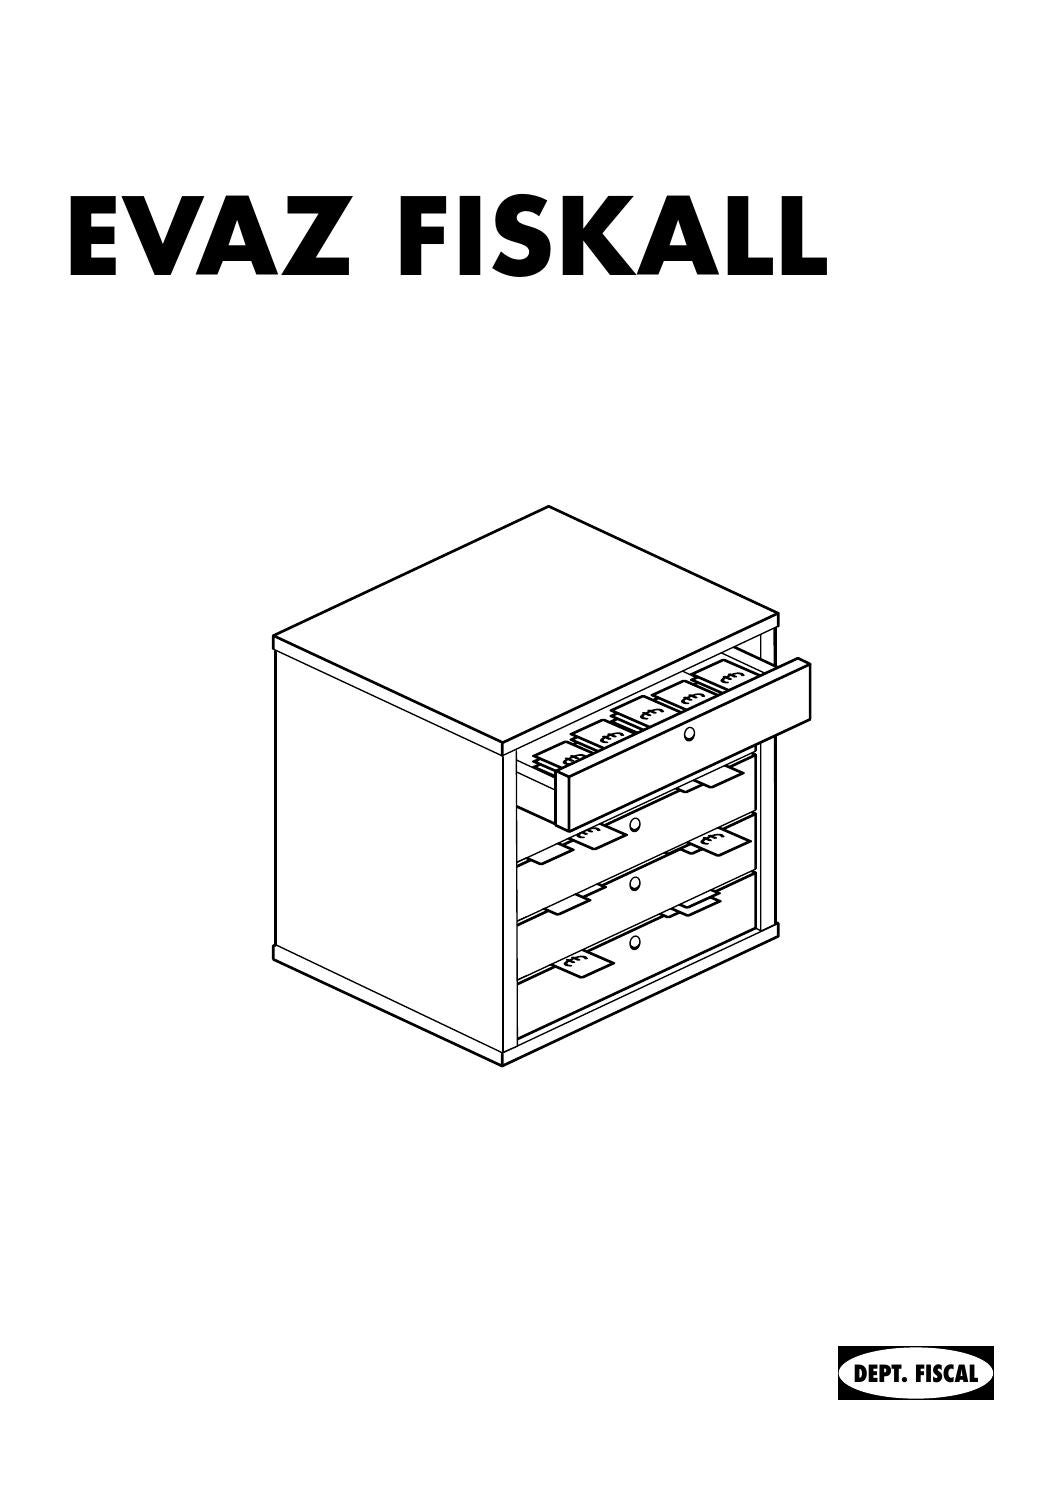 kit evaz fiskall d 39 ikea by europe ecologie issuu. Black Bedroom Furniture Sets. Home Design Ideas